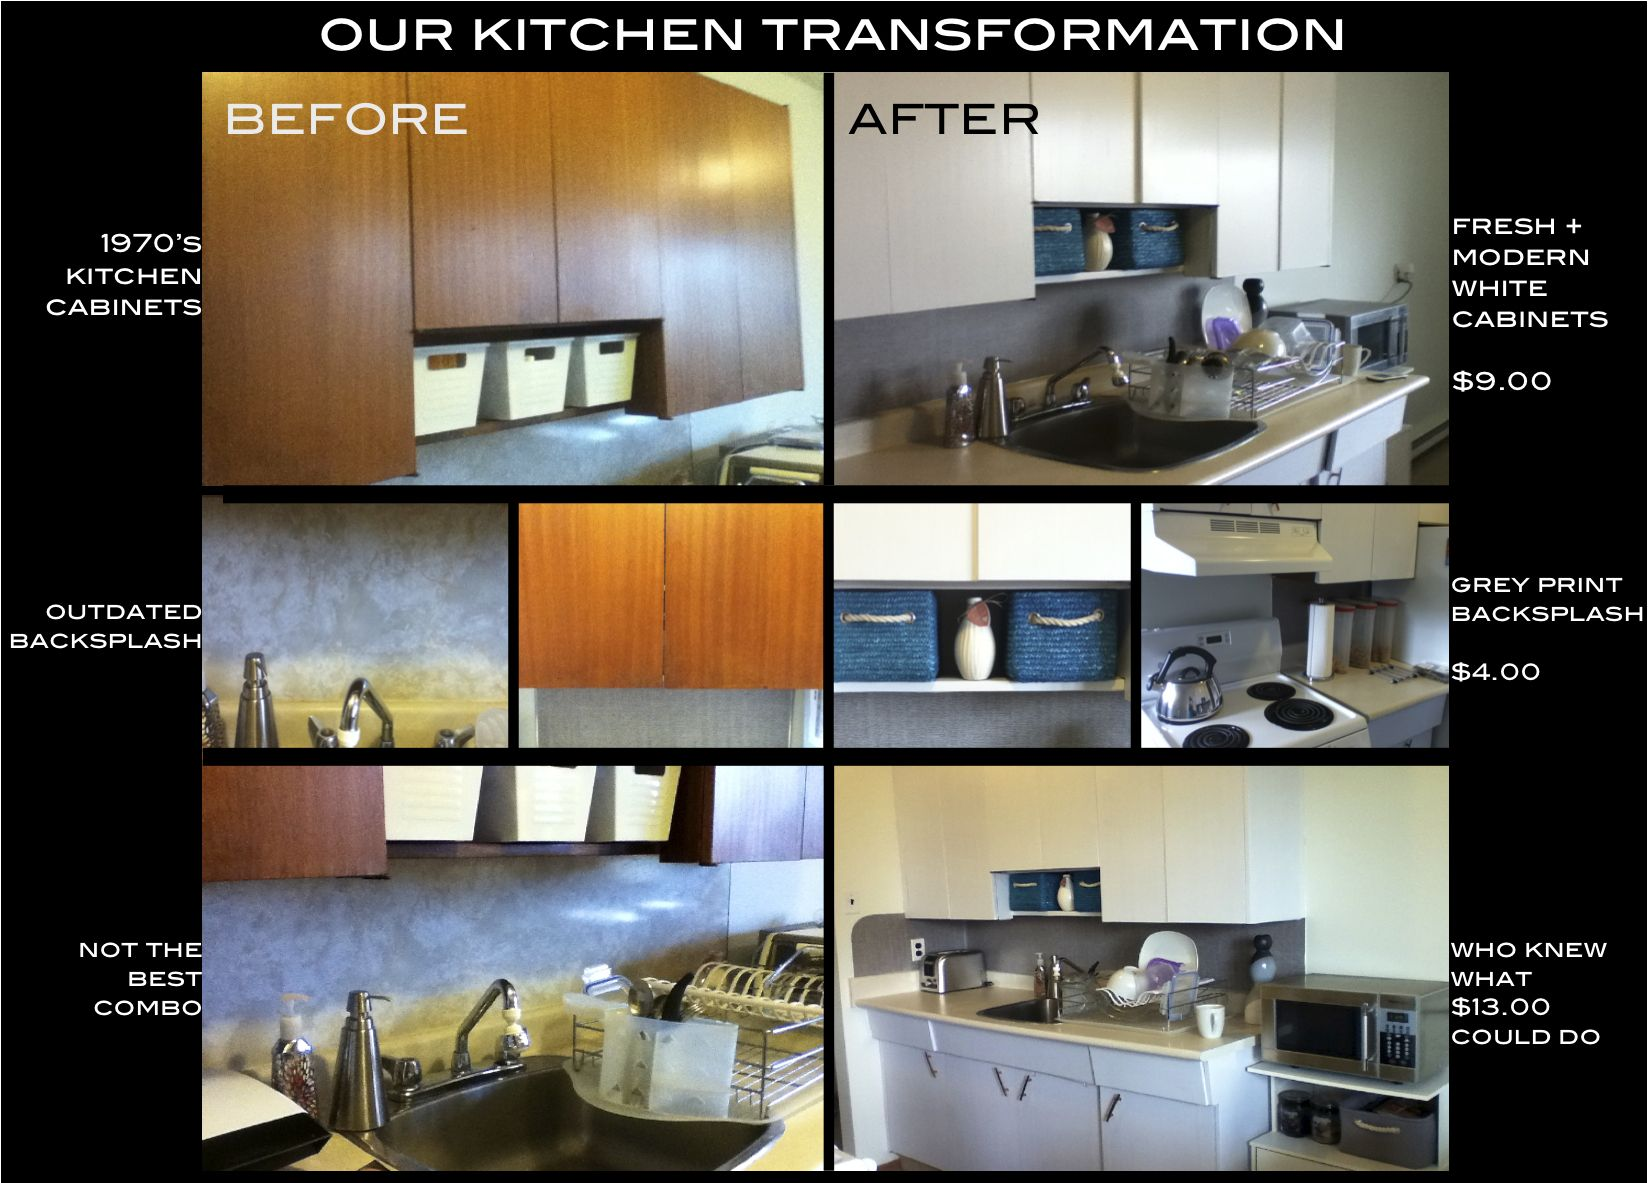 Contact Paper Cabinets Google Search Kitchen Cabinet Shelves Kitchen Shelf Liner Kitchen Remodel Cost